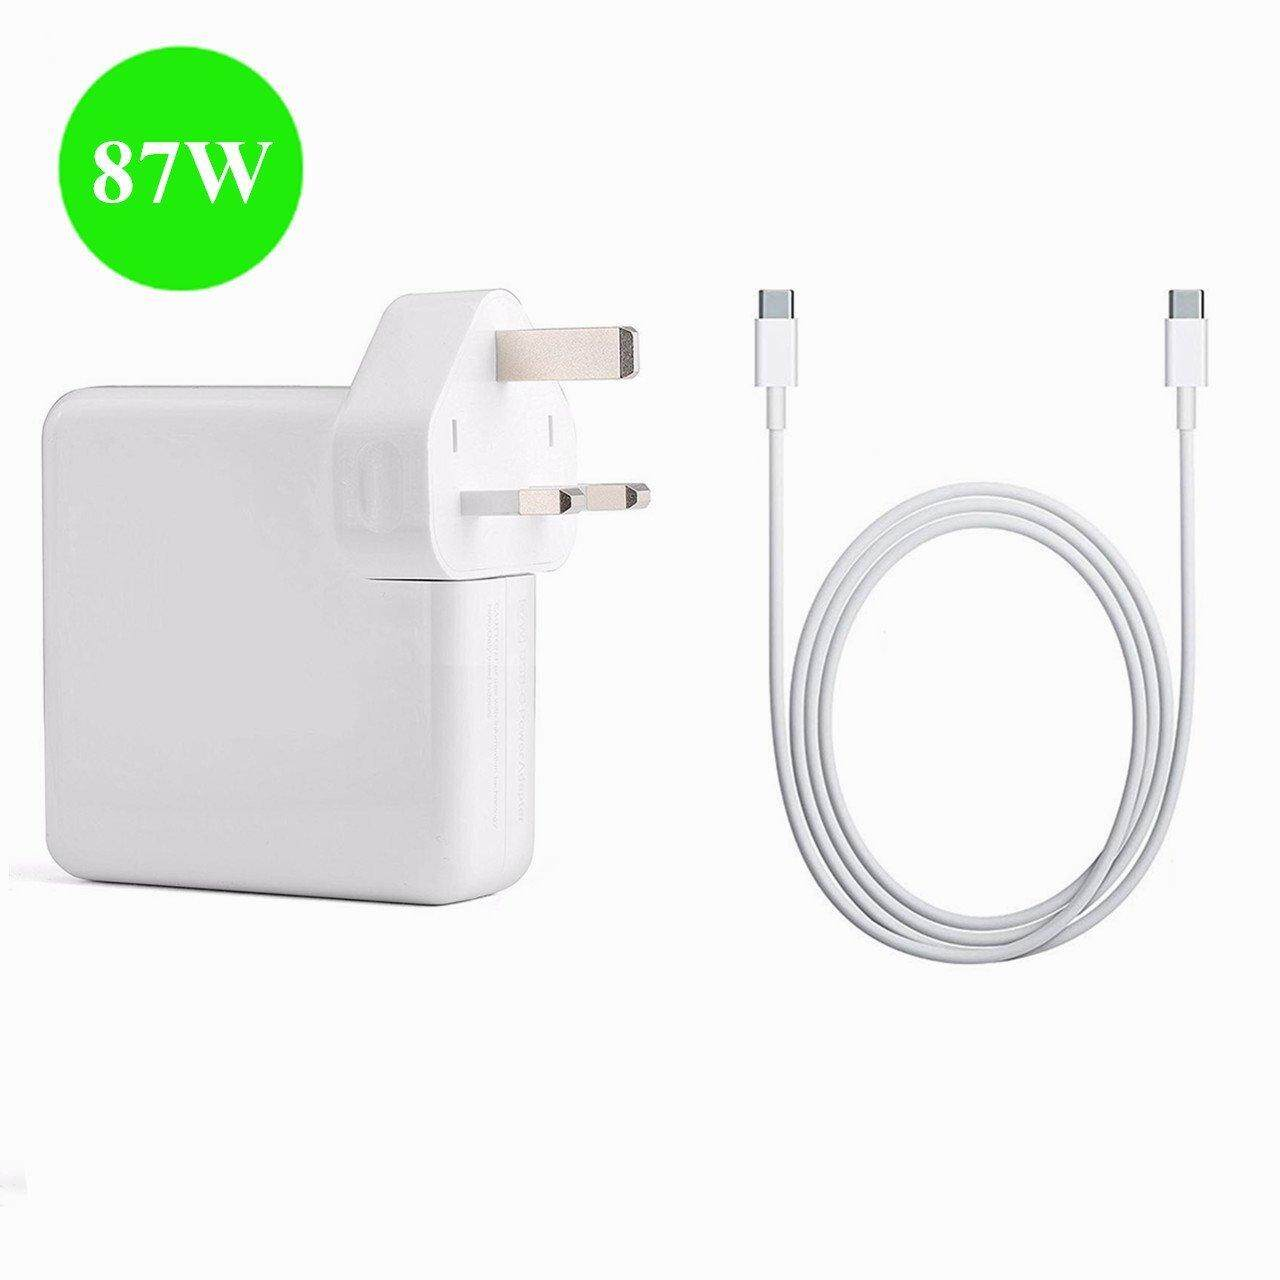 Features Aukey Usb C To 3 0 Cable Durable Braided Nylon 2m For Cb Cd5 1m Quick Charge 30 Power Adapter 87w Macbook Pro 2016 With